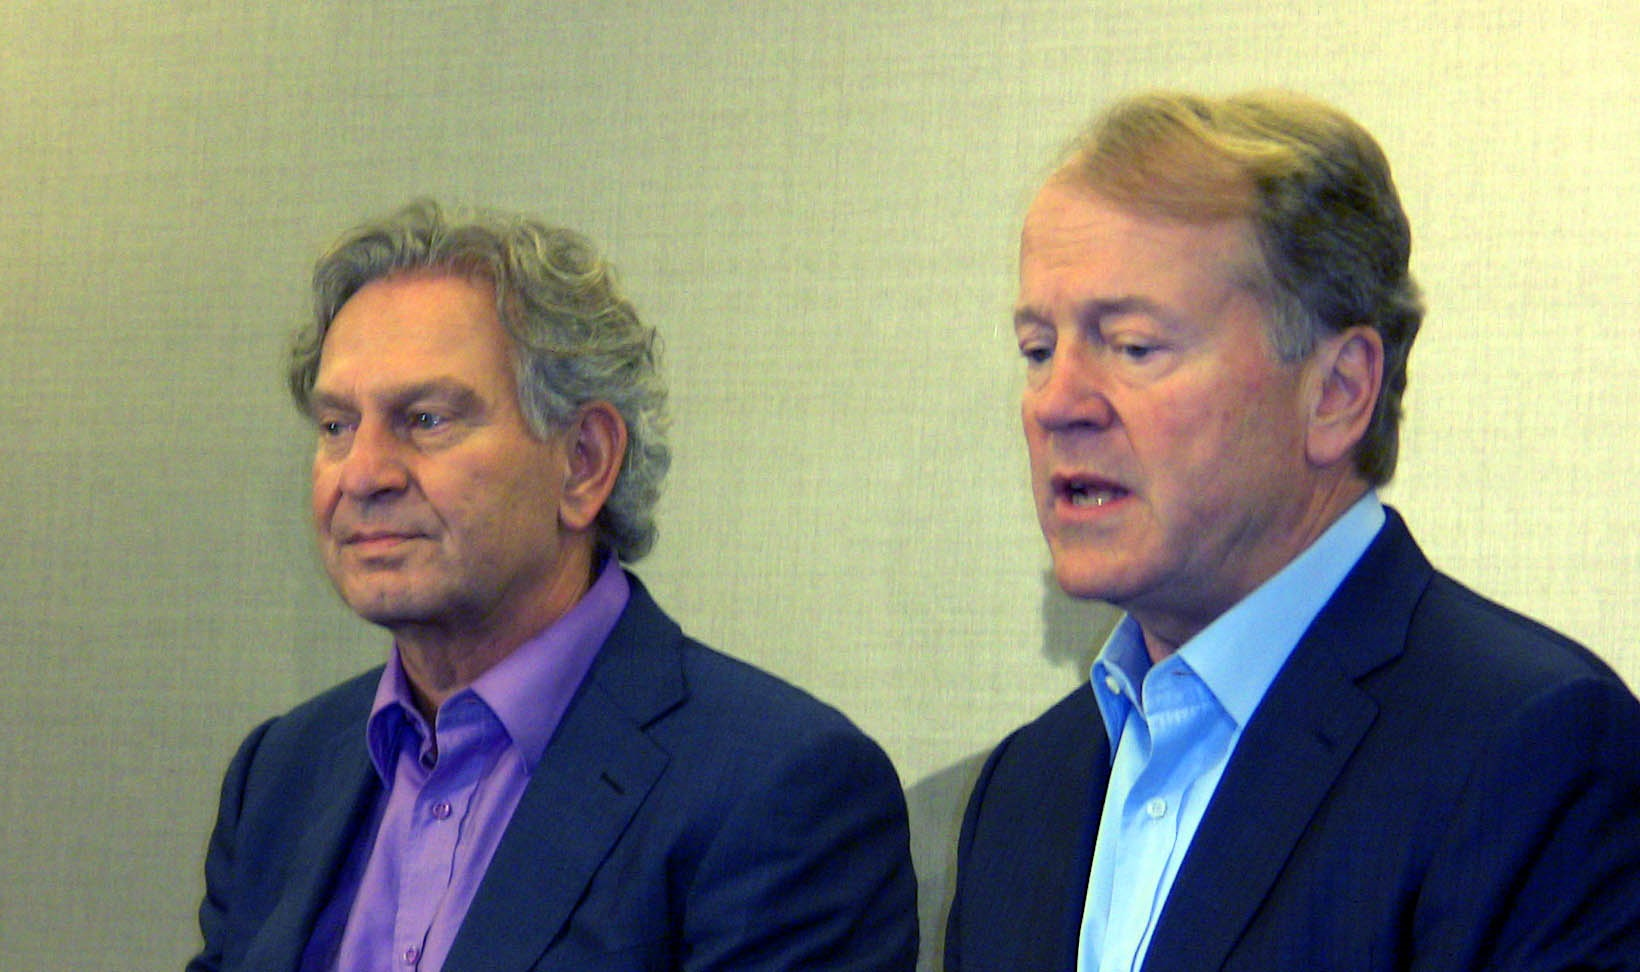 Chief globalization officer, Wim Elfrink and Cisco CEO John Chambers